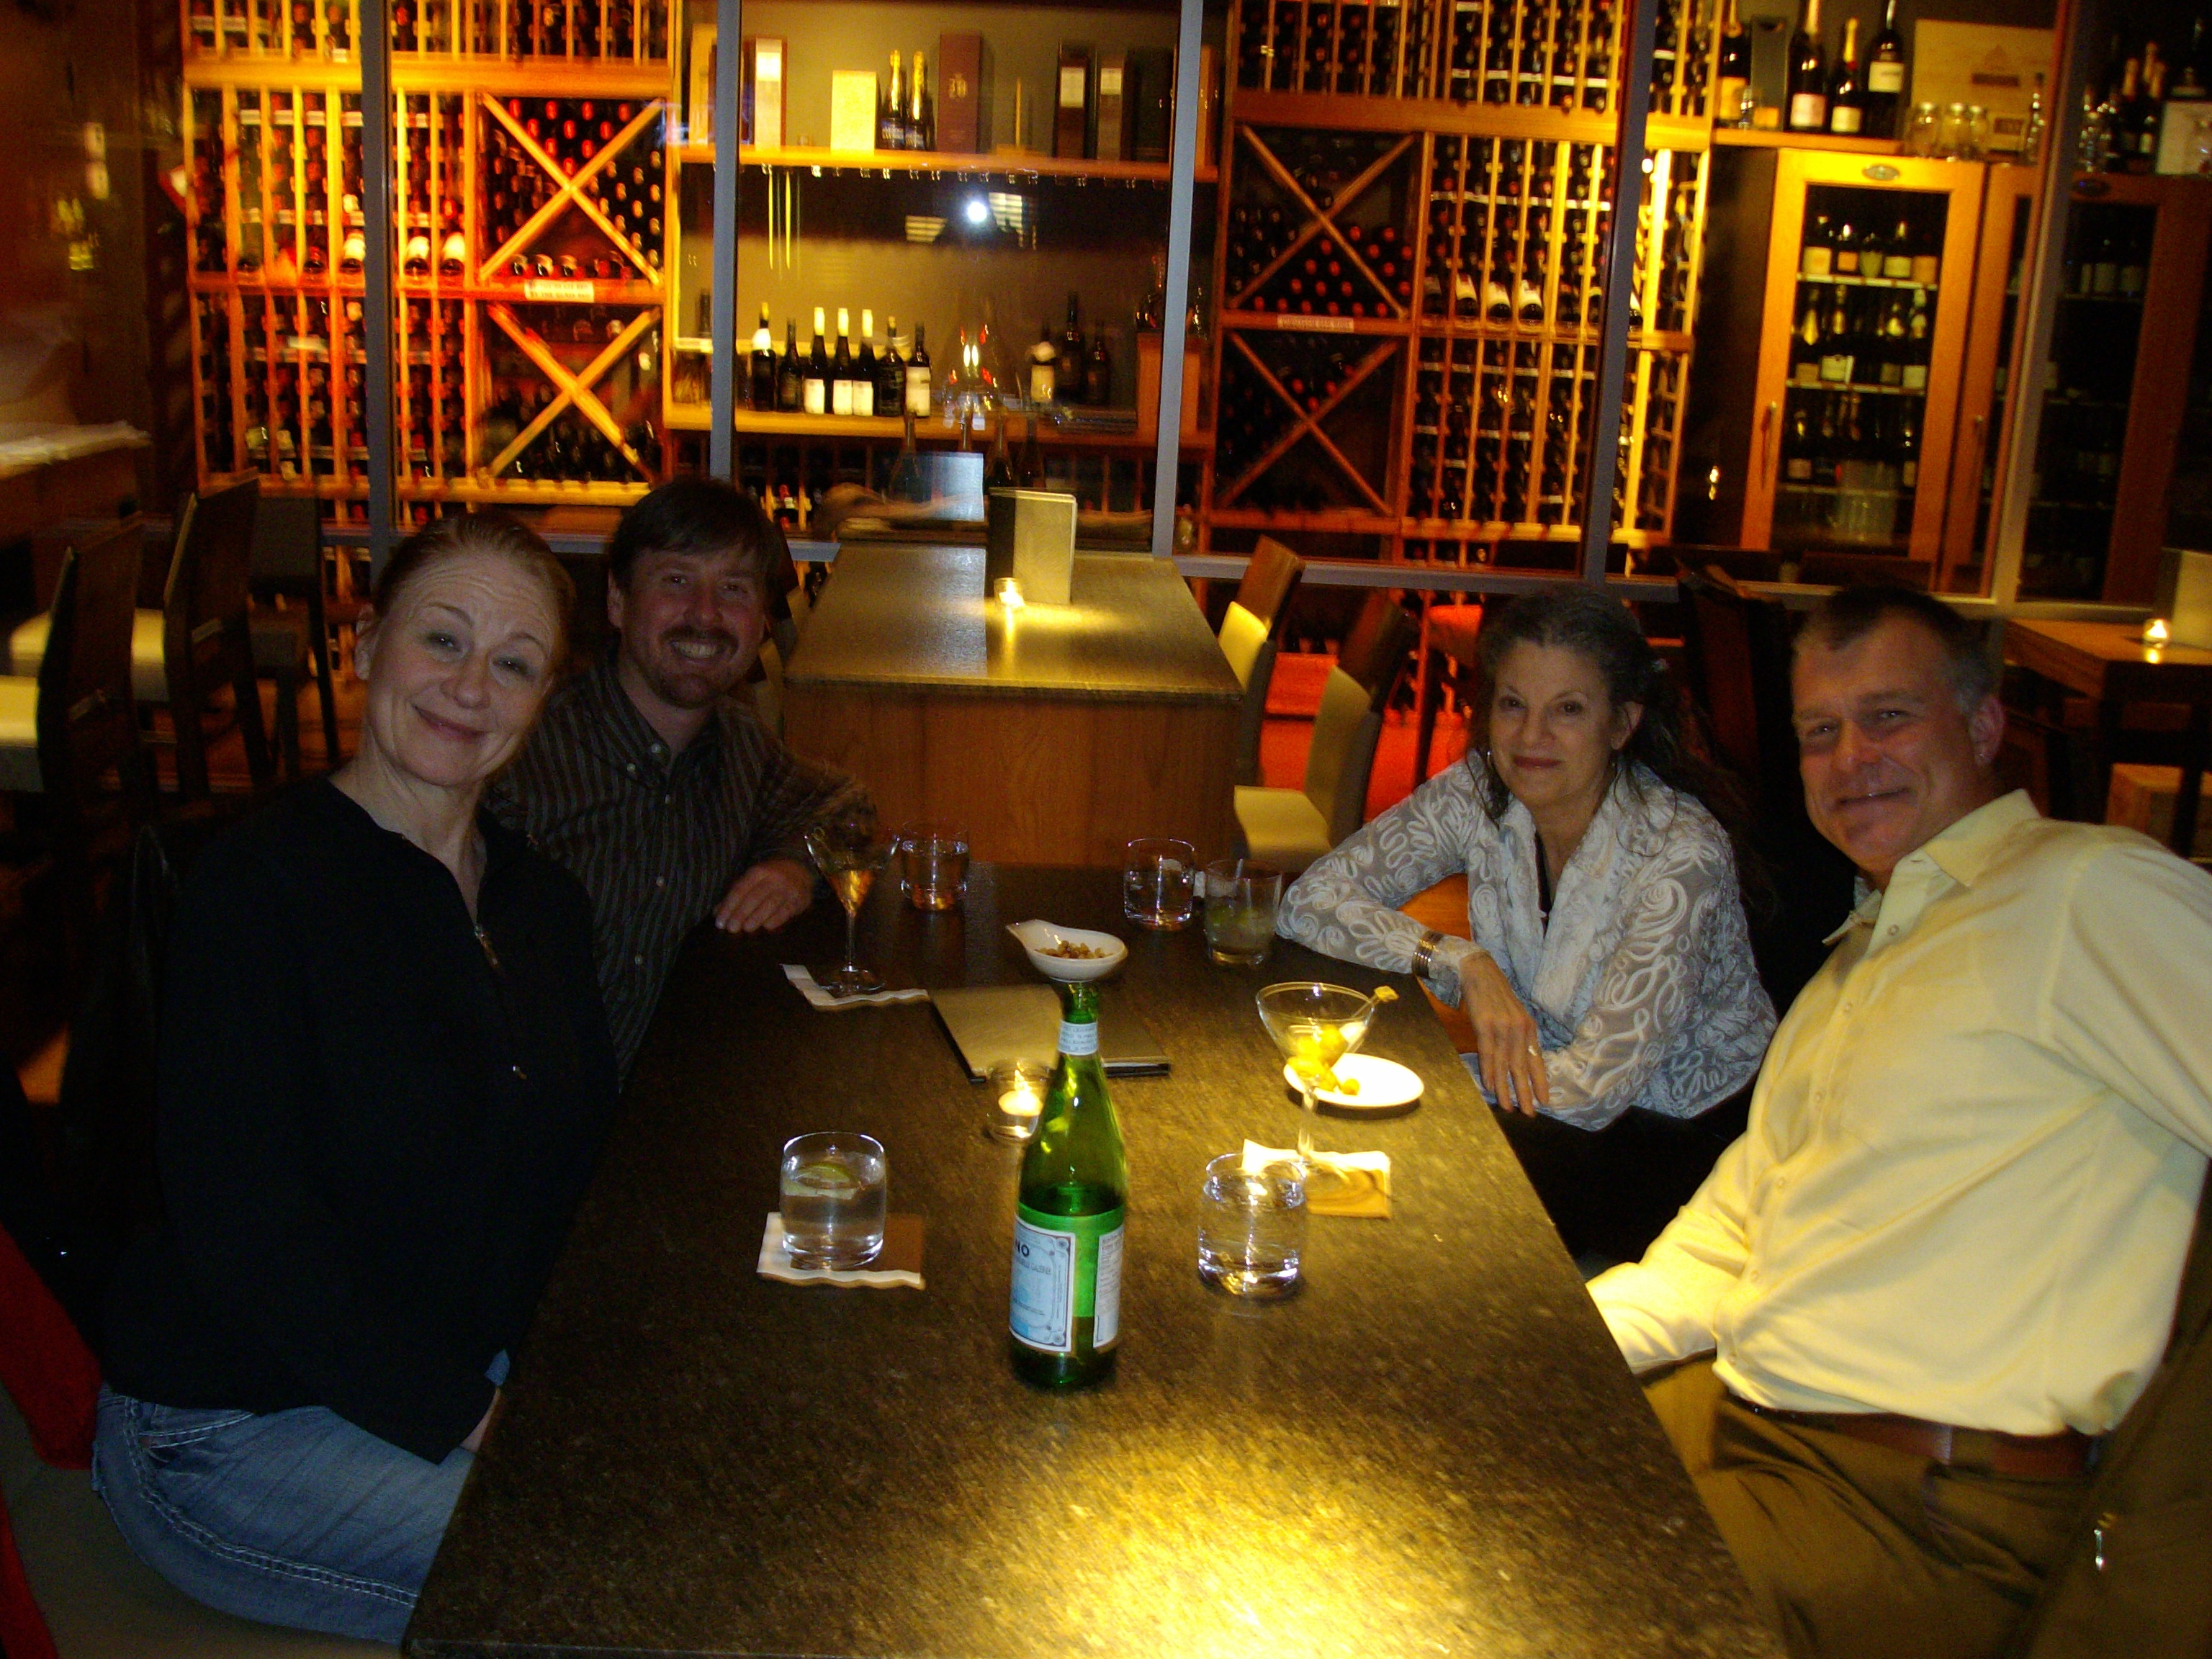 Left to Right: Anna Smith, Will Pritchard, Laura Agustin and Andy Sorfleet at Yew lounge at the Four Seasons, downtown Vancouver